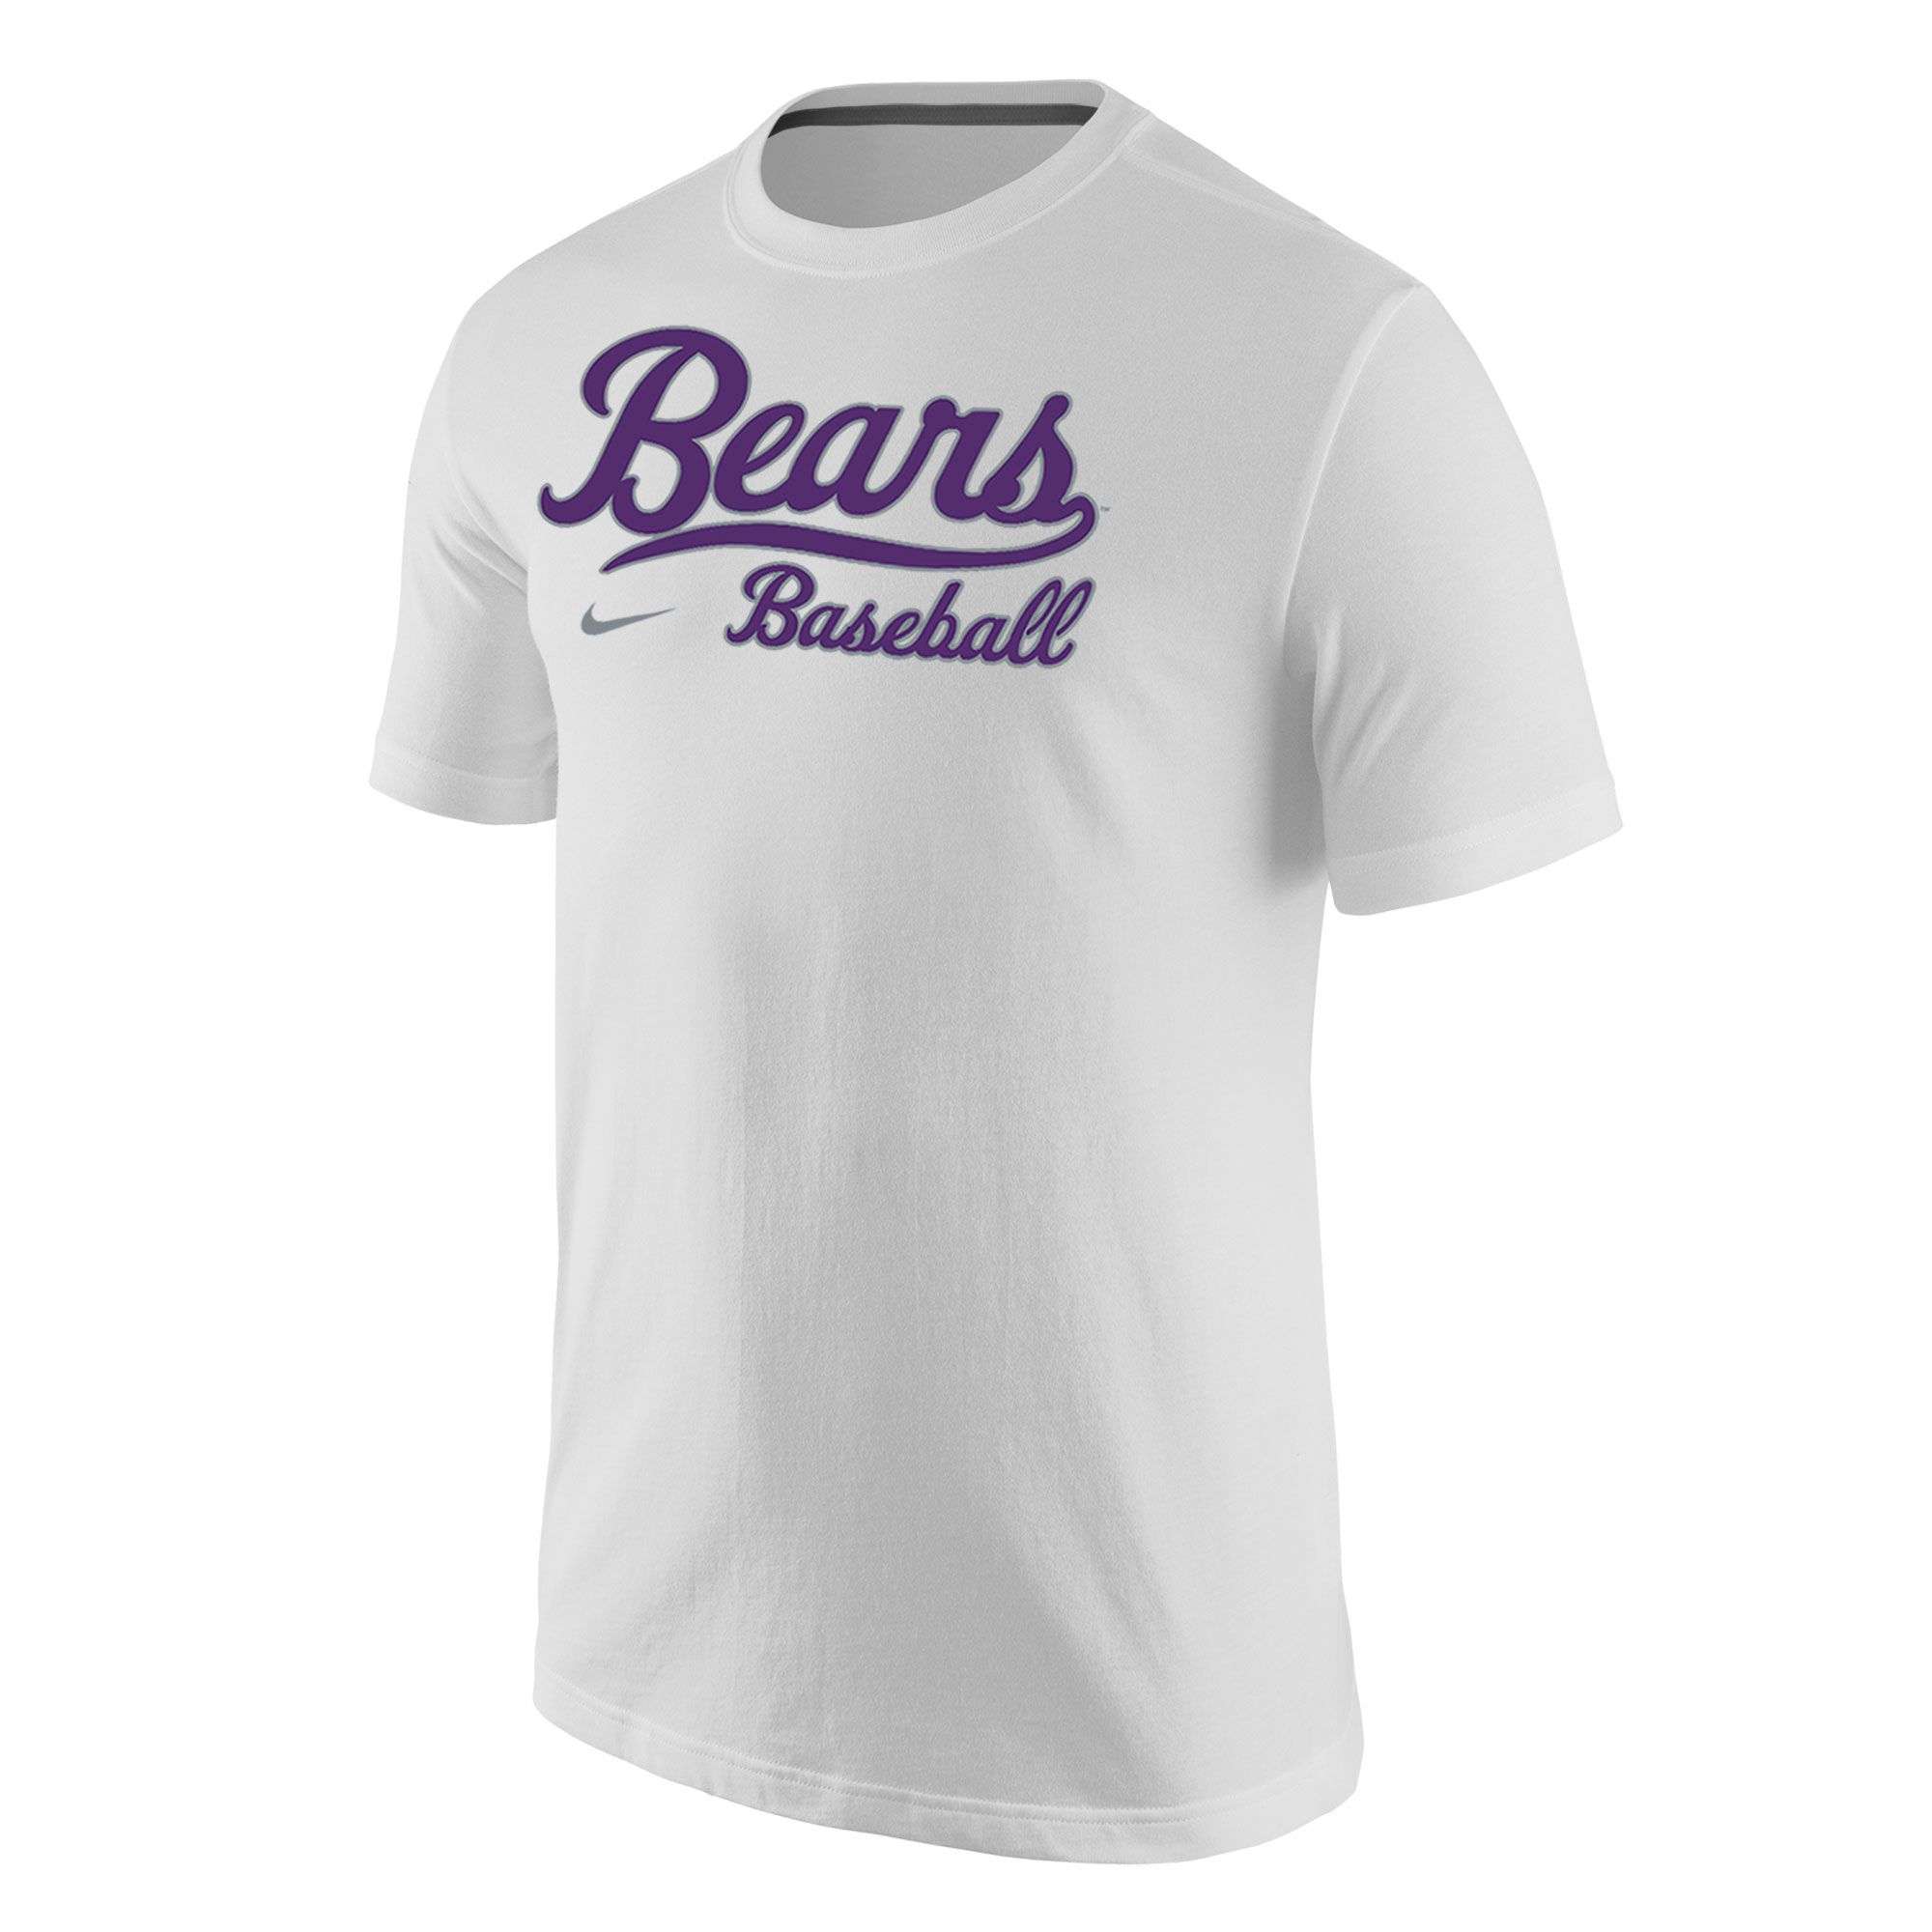 Core SS Bears Baseball Tee